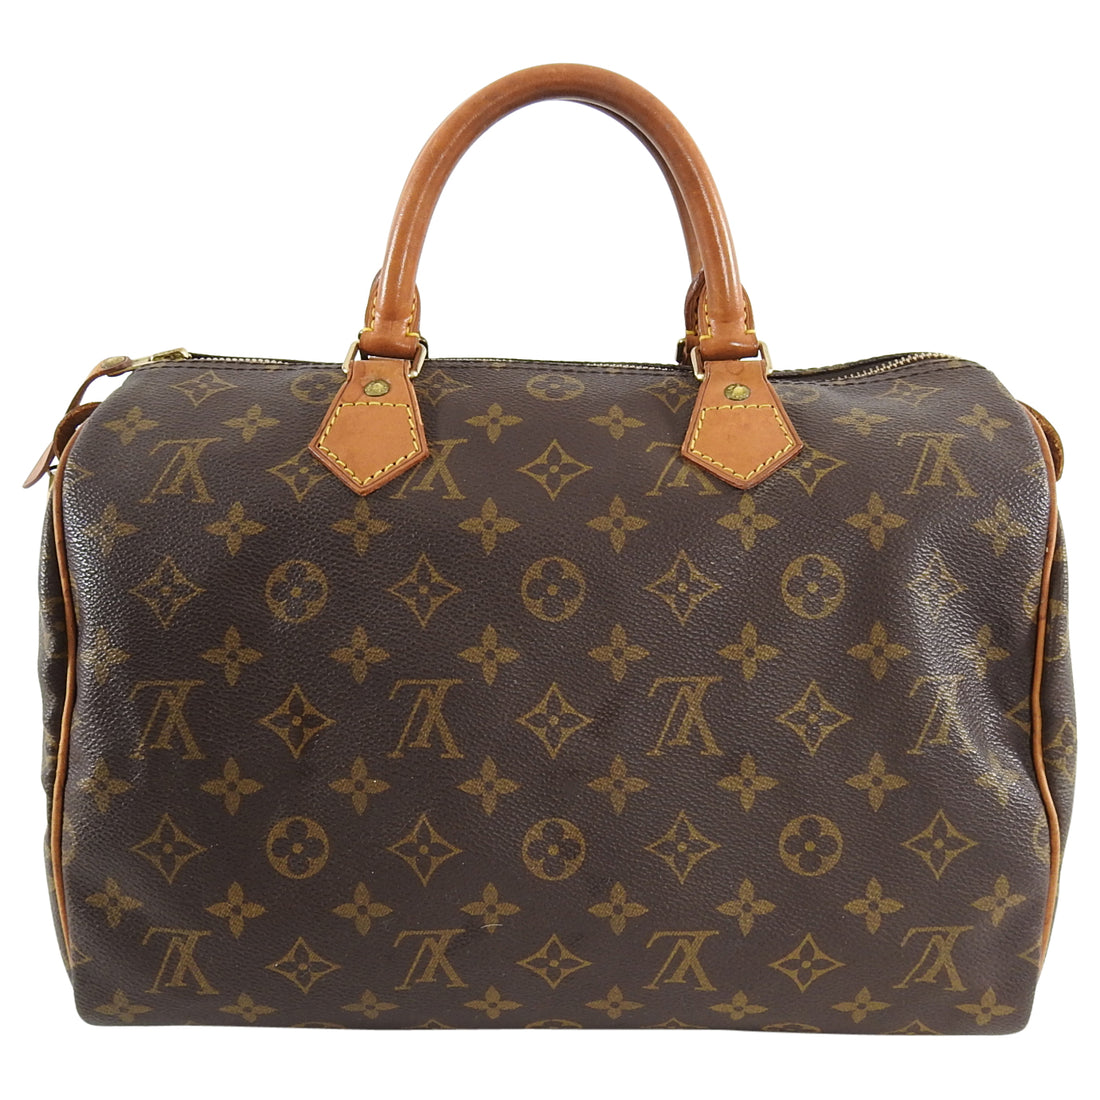 Louis Vuitton Vintage 1992 Monogram Speedy 30cm